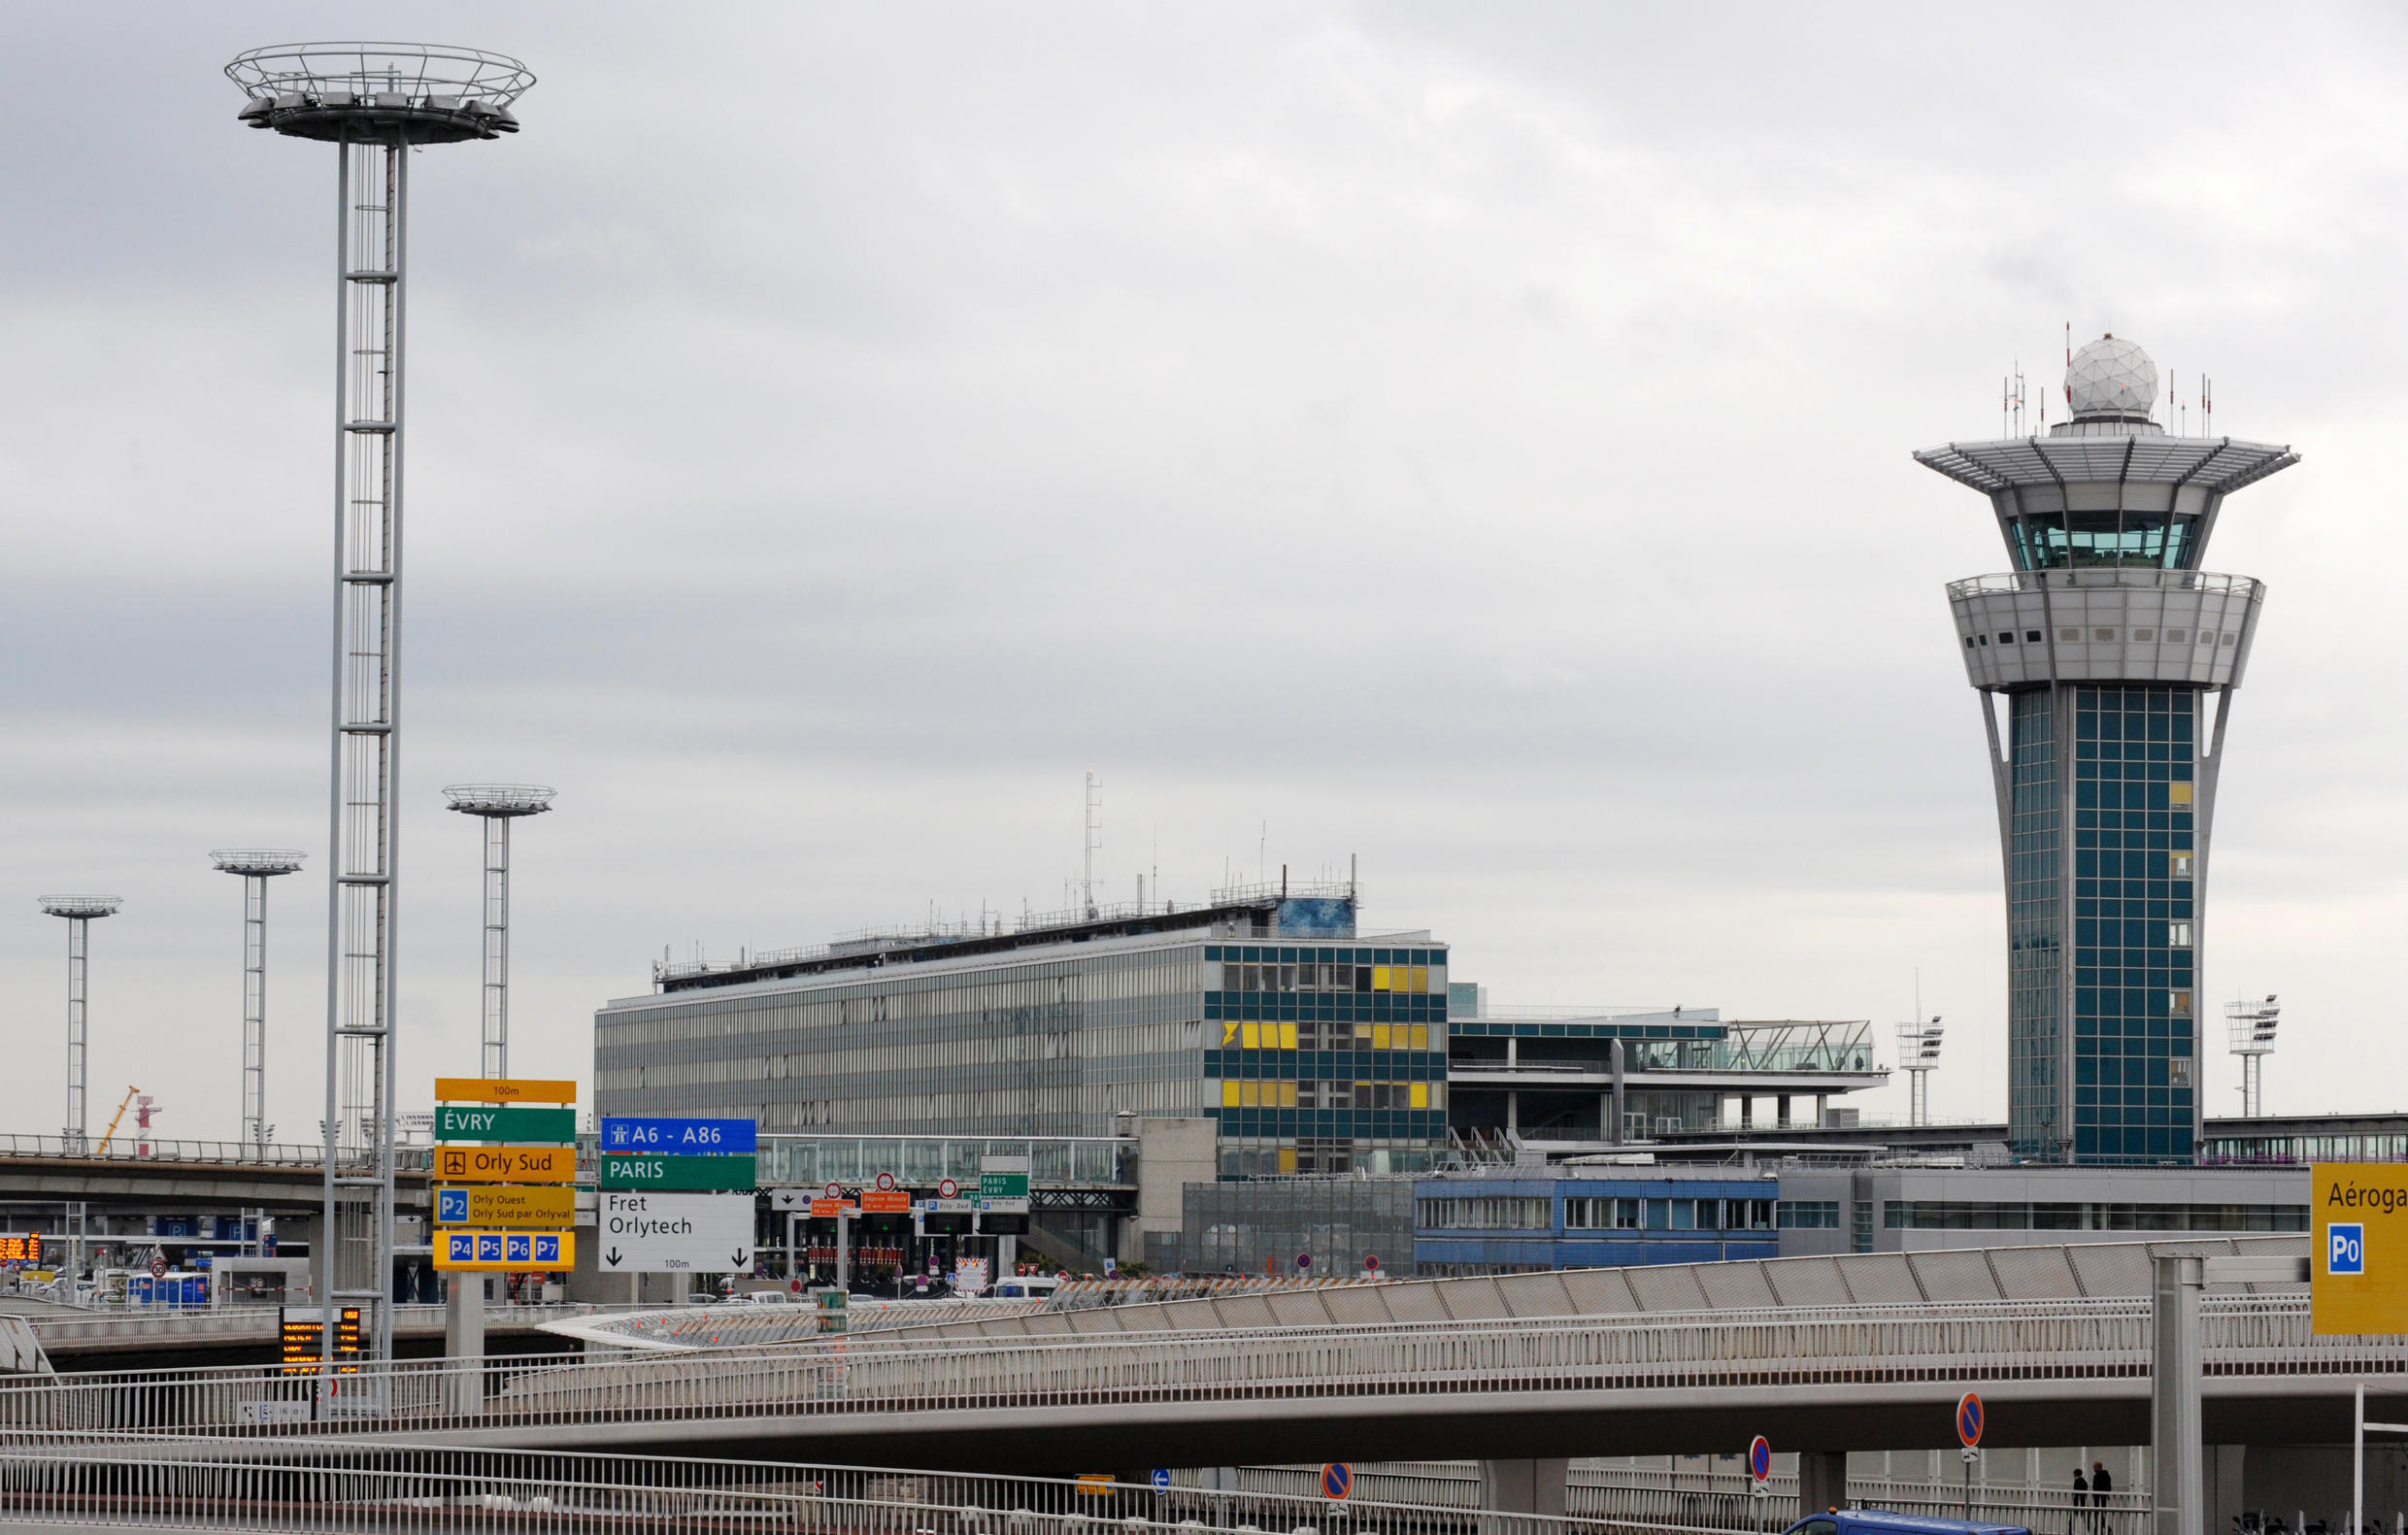 Control tower, Paris-Orly Sud airport, south of Paris